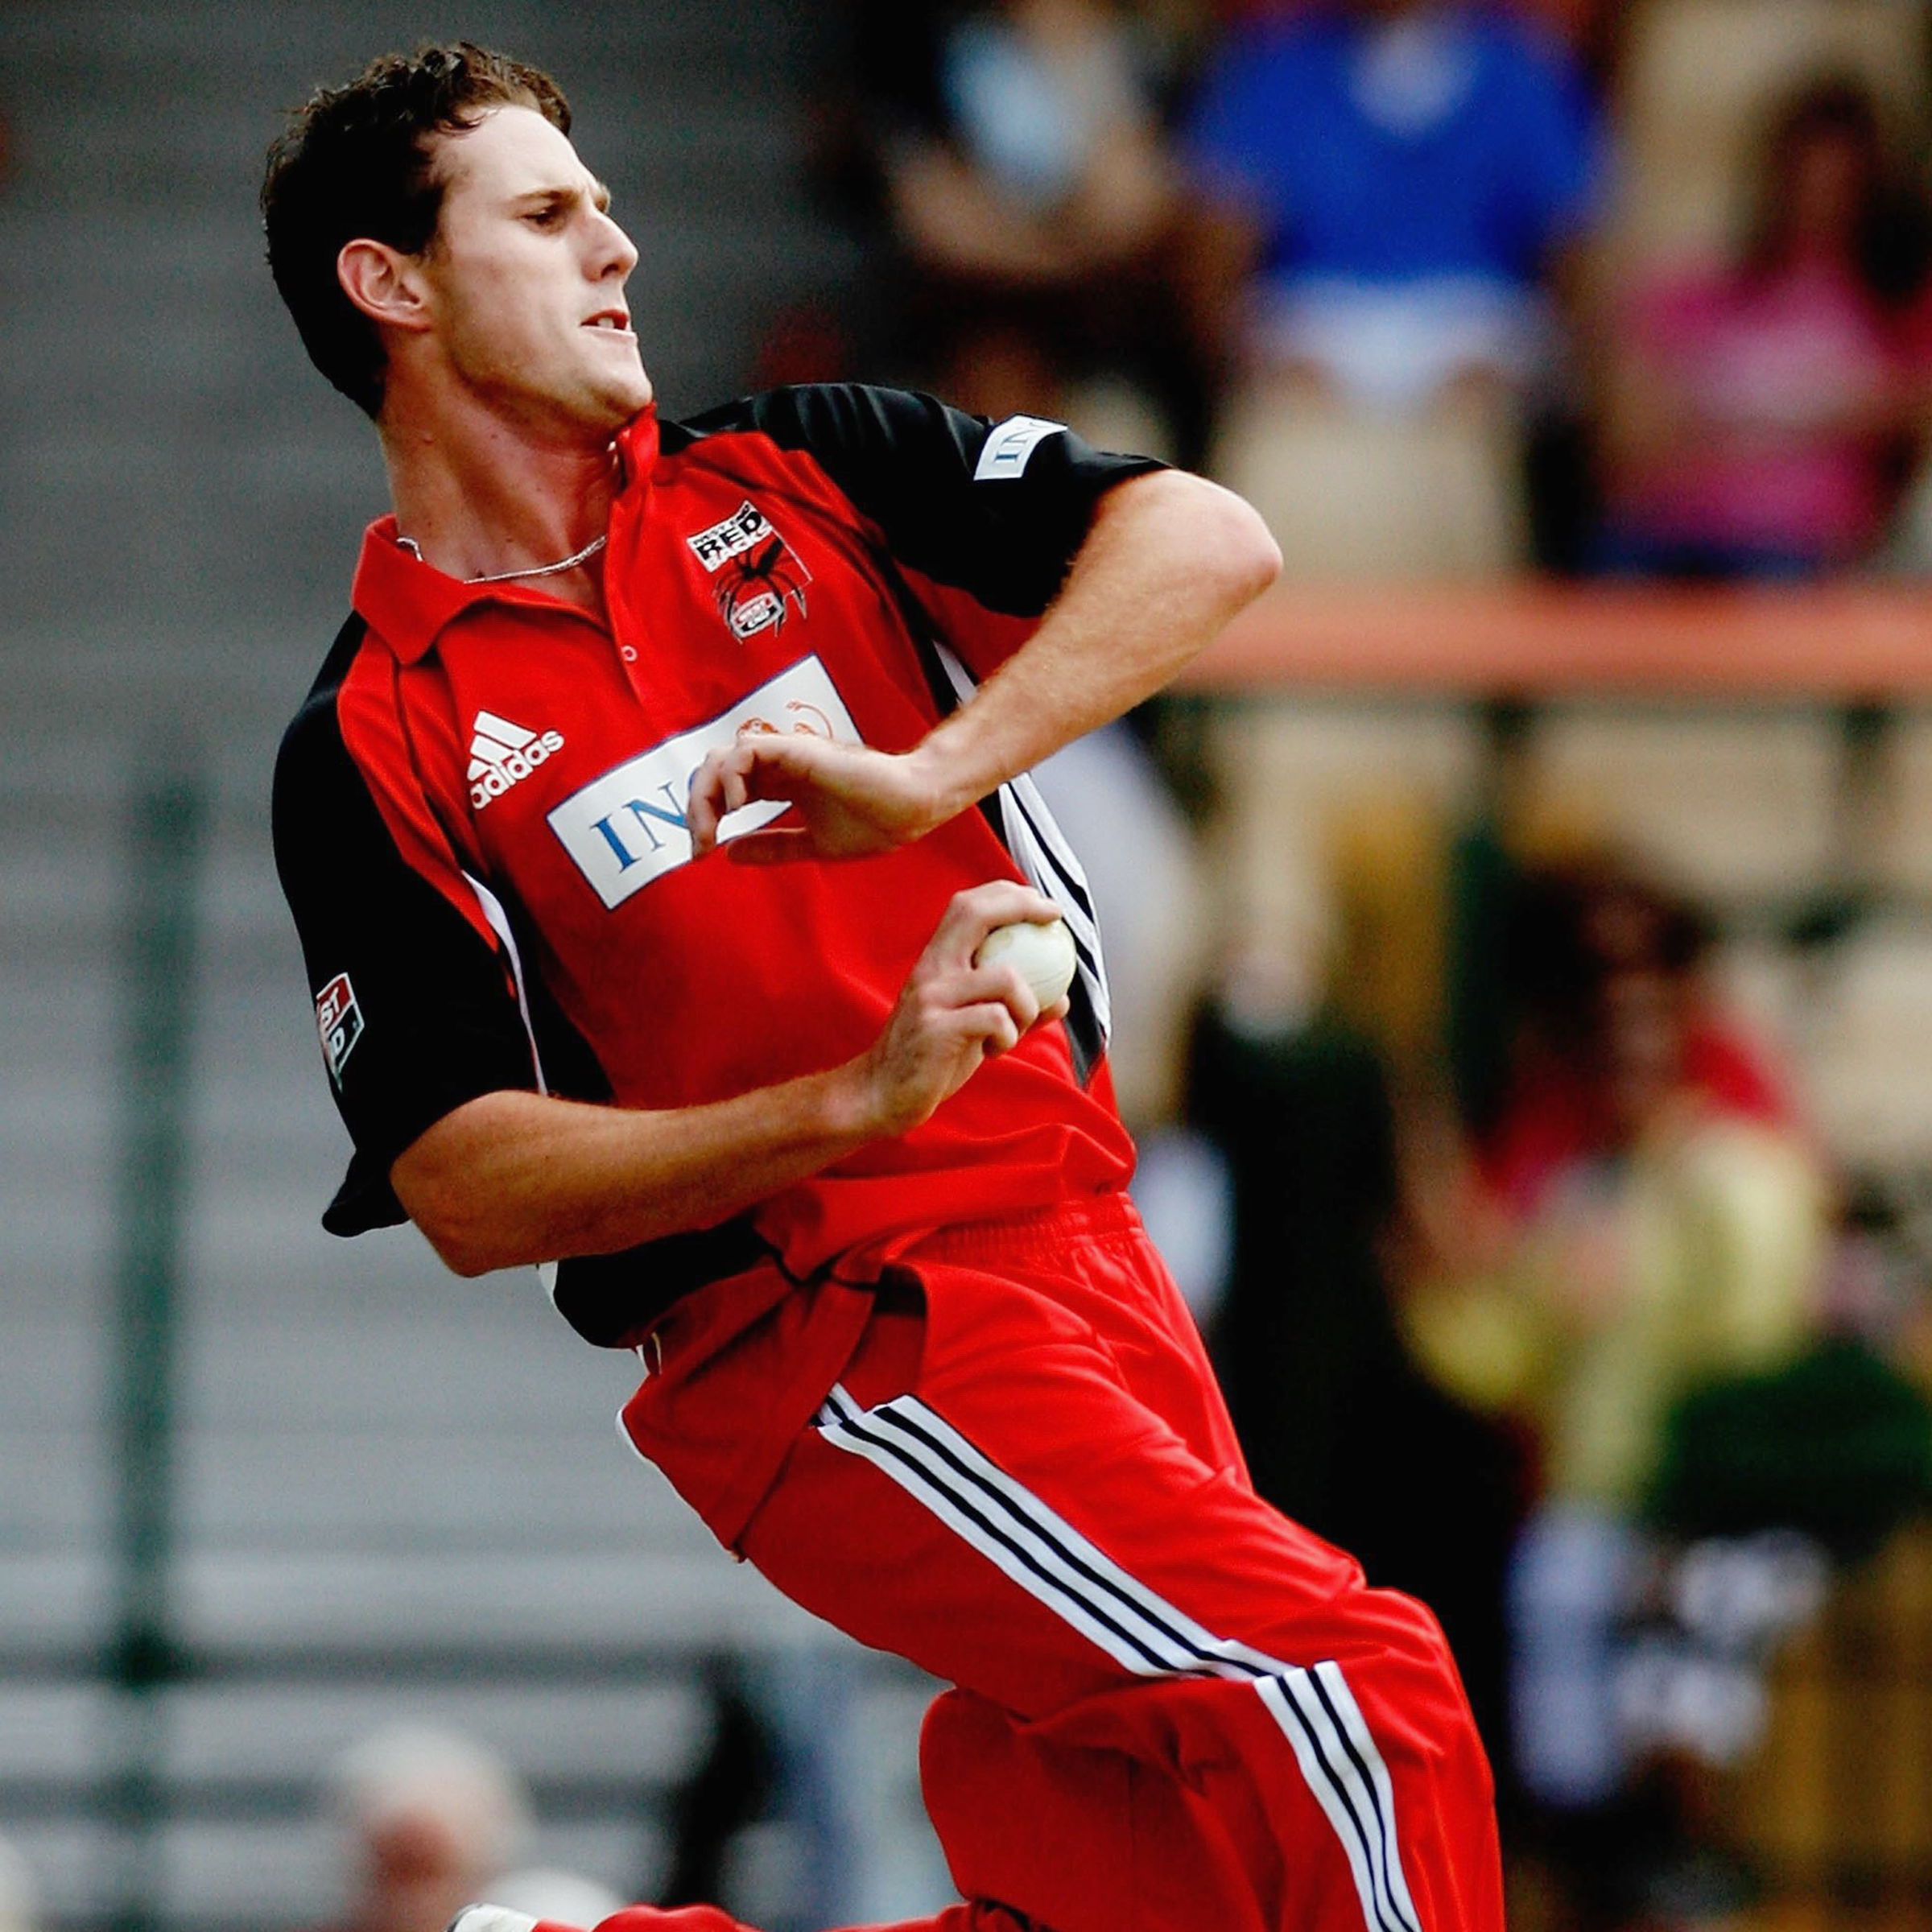 Tait was at his pomp for the Redbacks in the mid-2000s // Getty